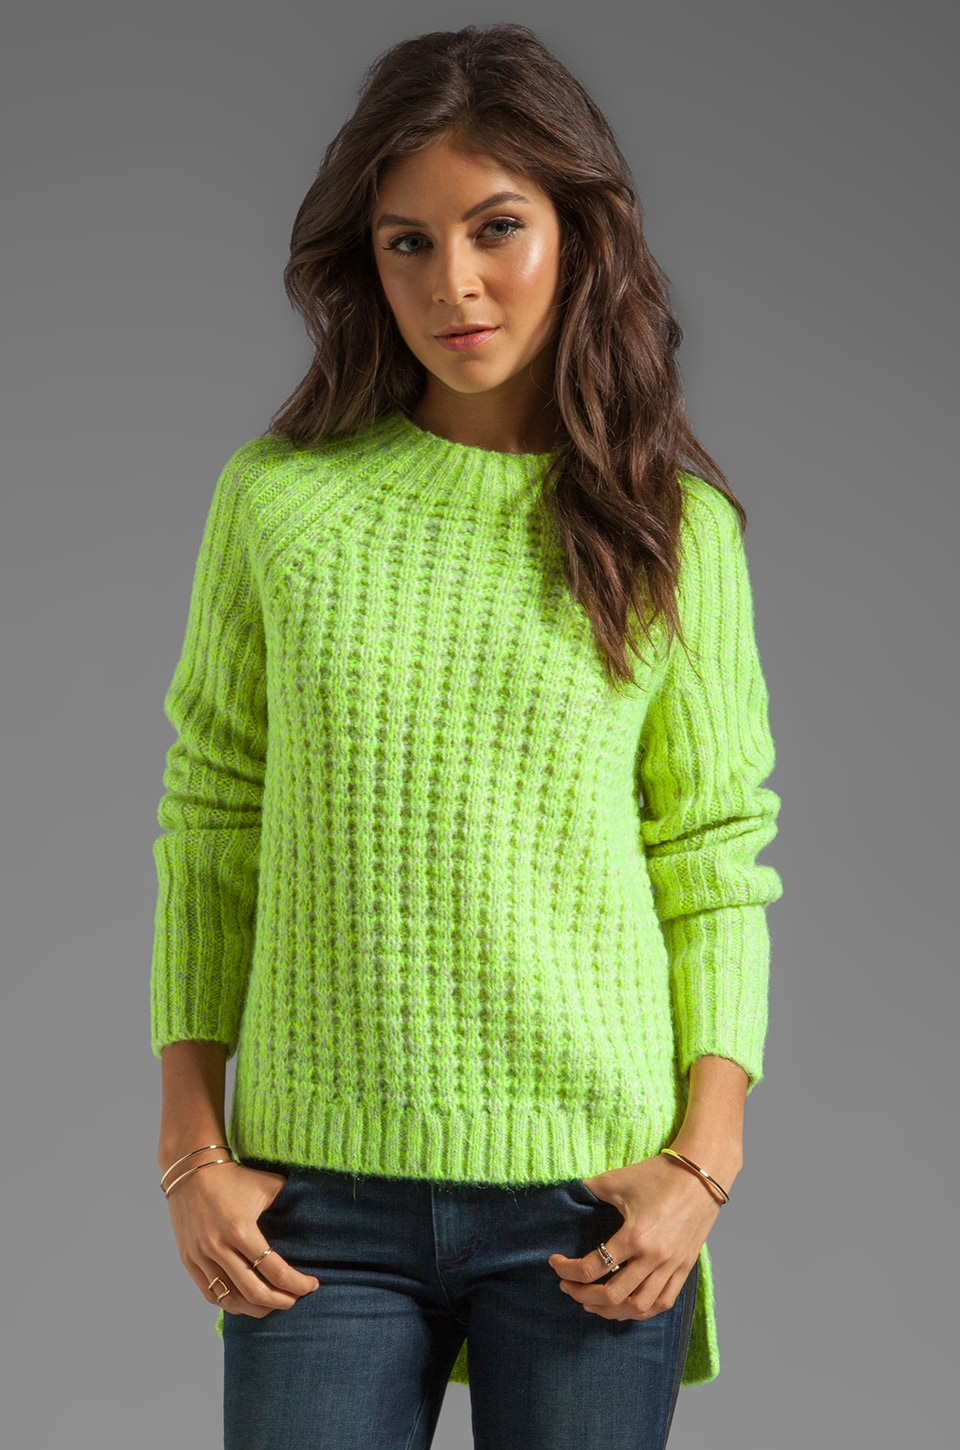 Tibi Waffle Knit Asymmetrical Sweater in Chartreuse Melange